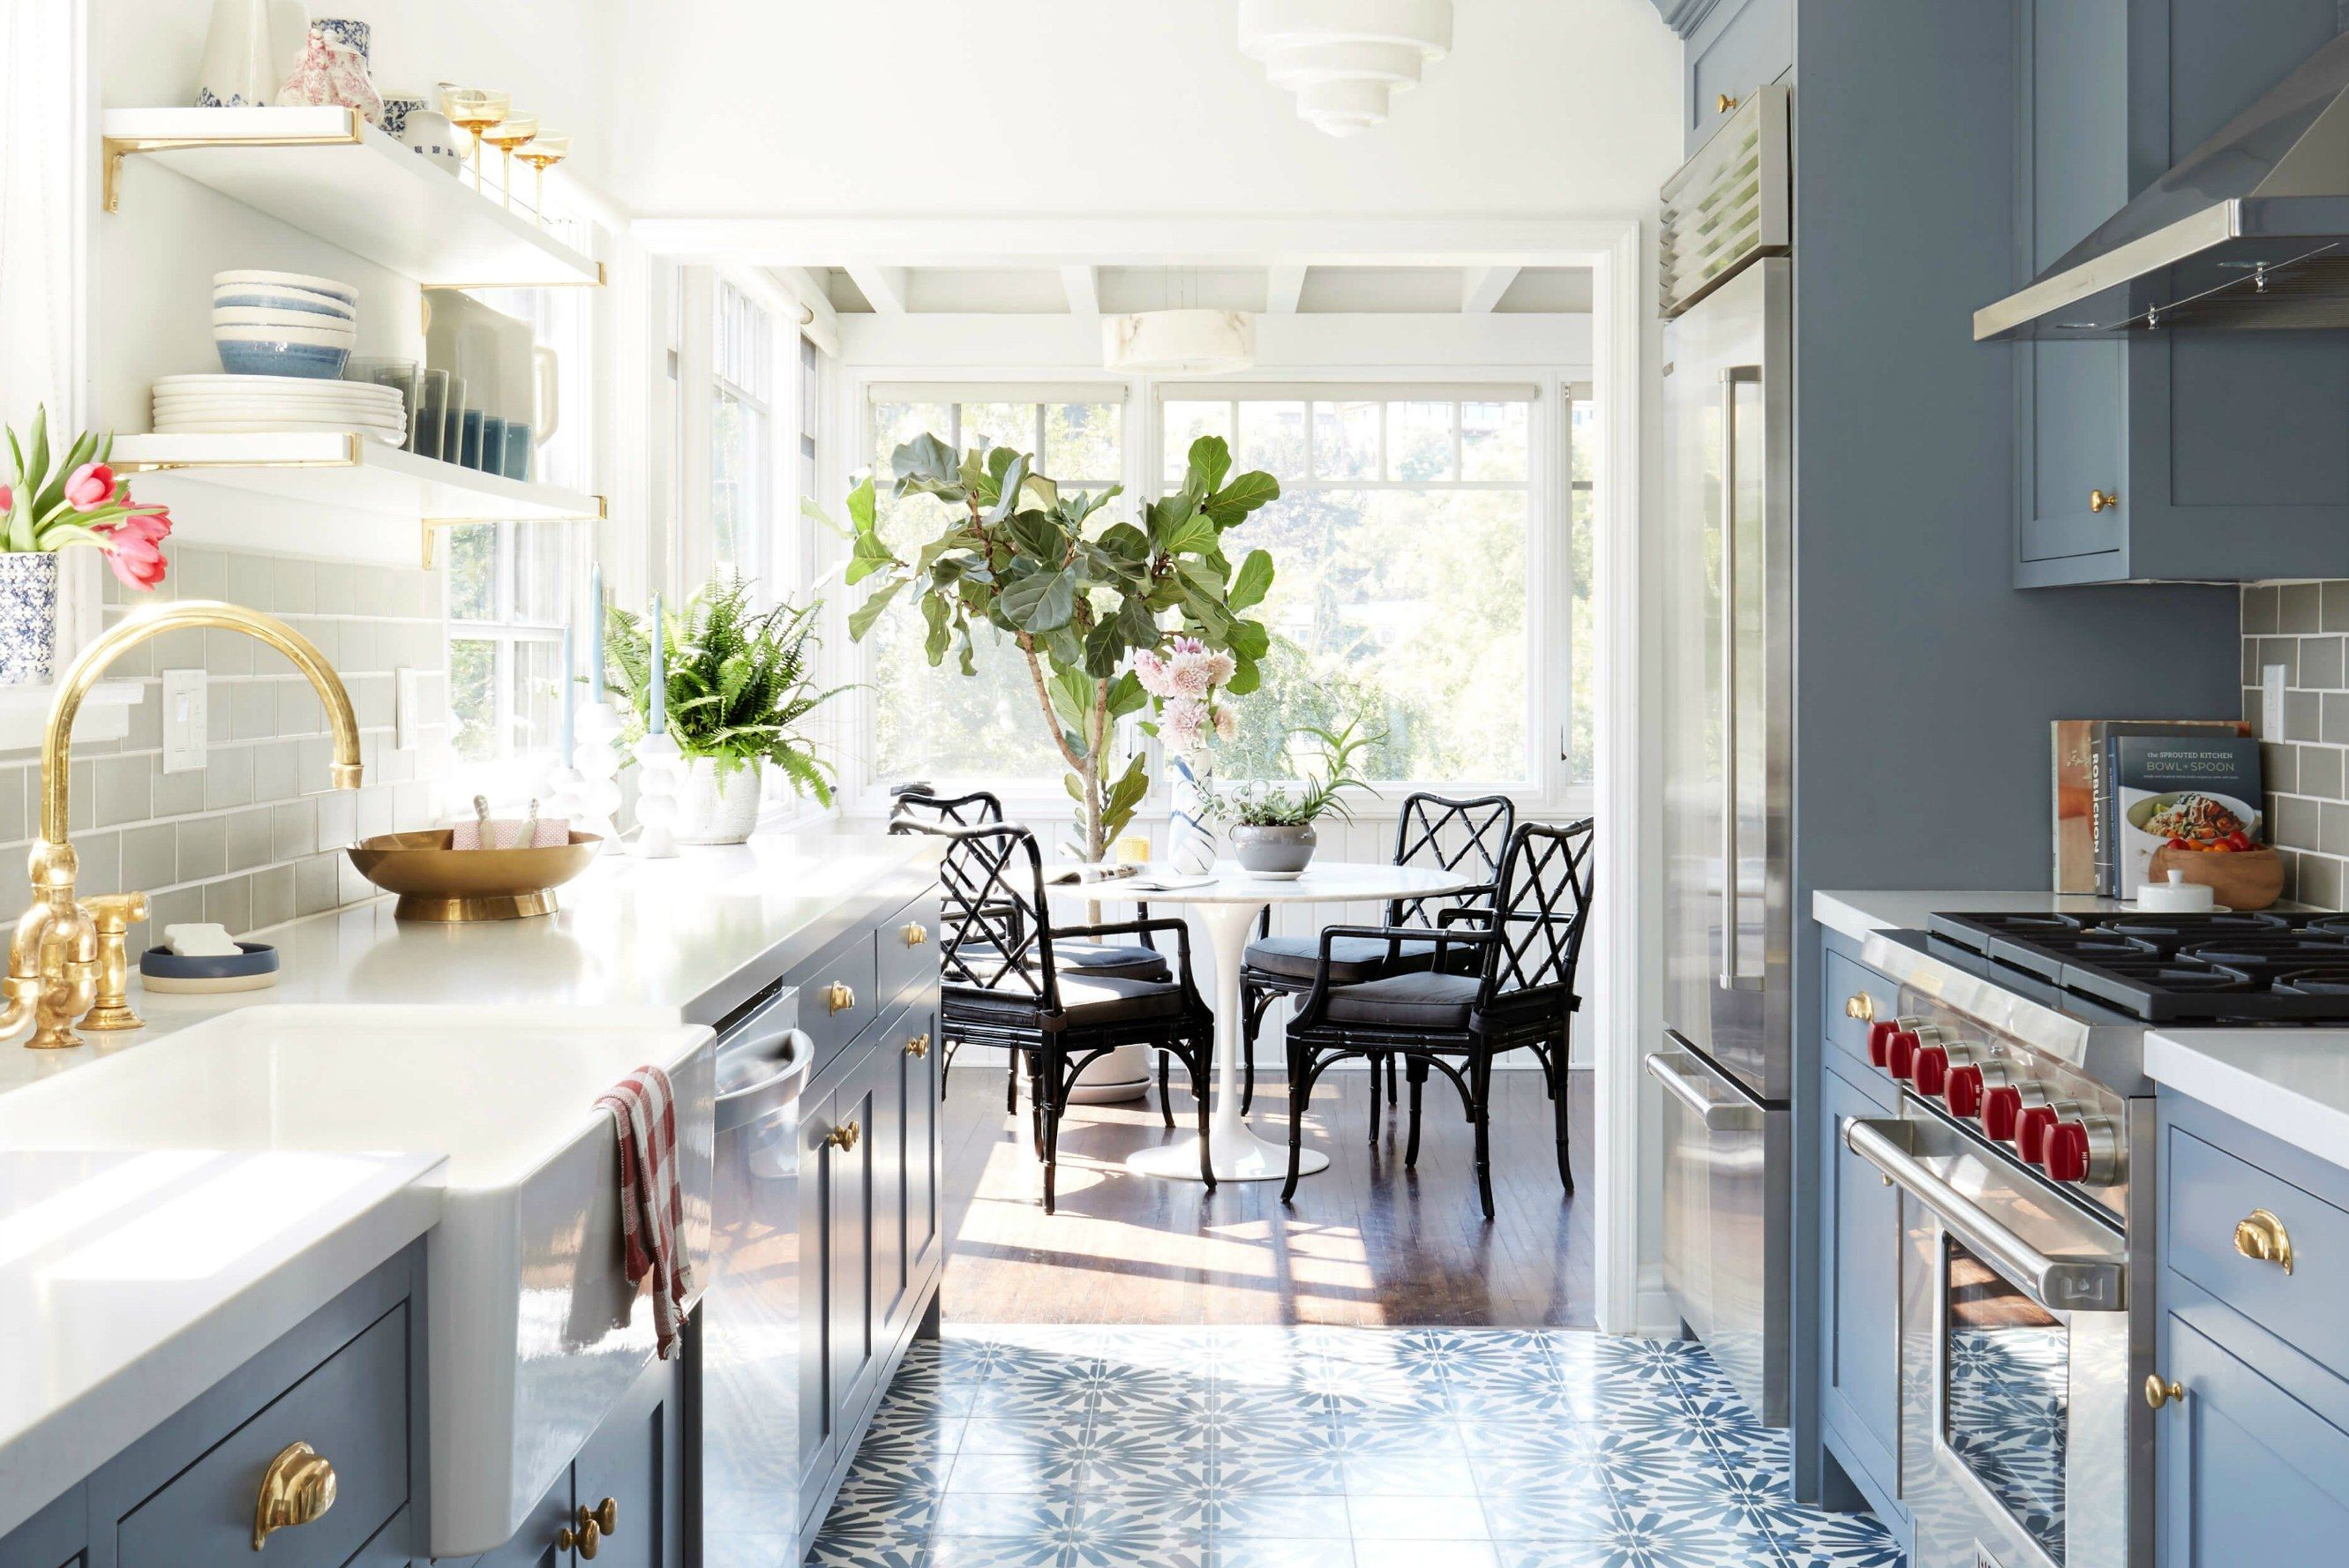 How to Make the Most of Your Galley Kitchen Small galley